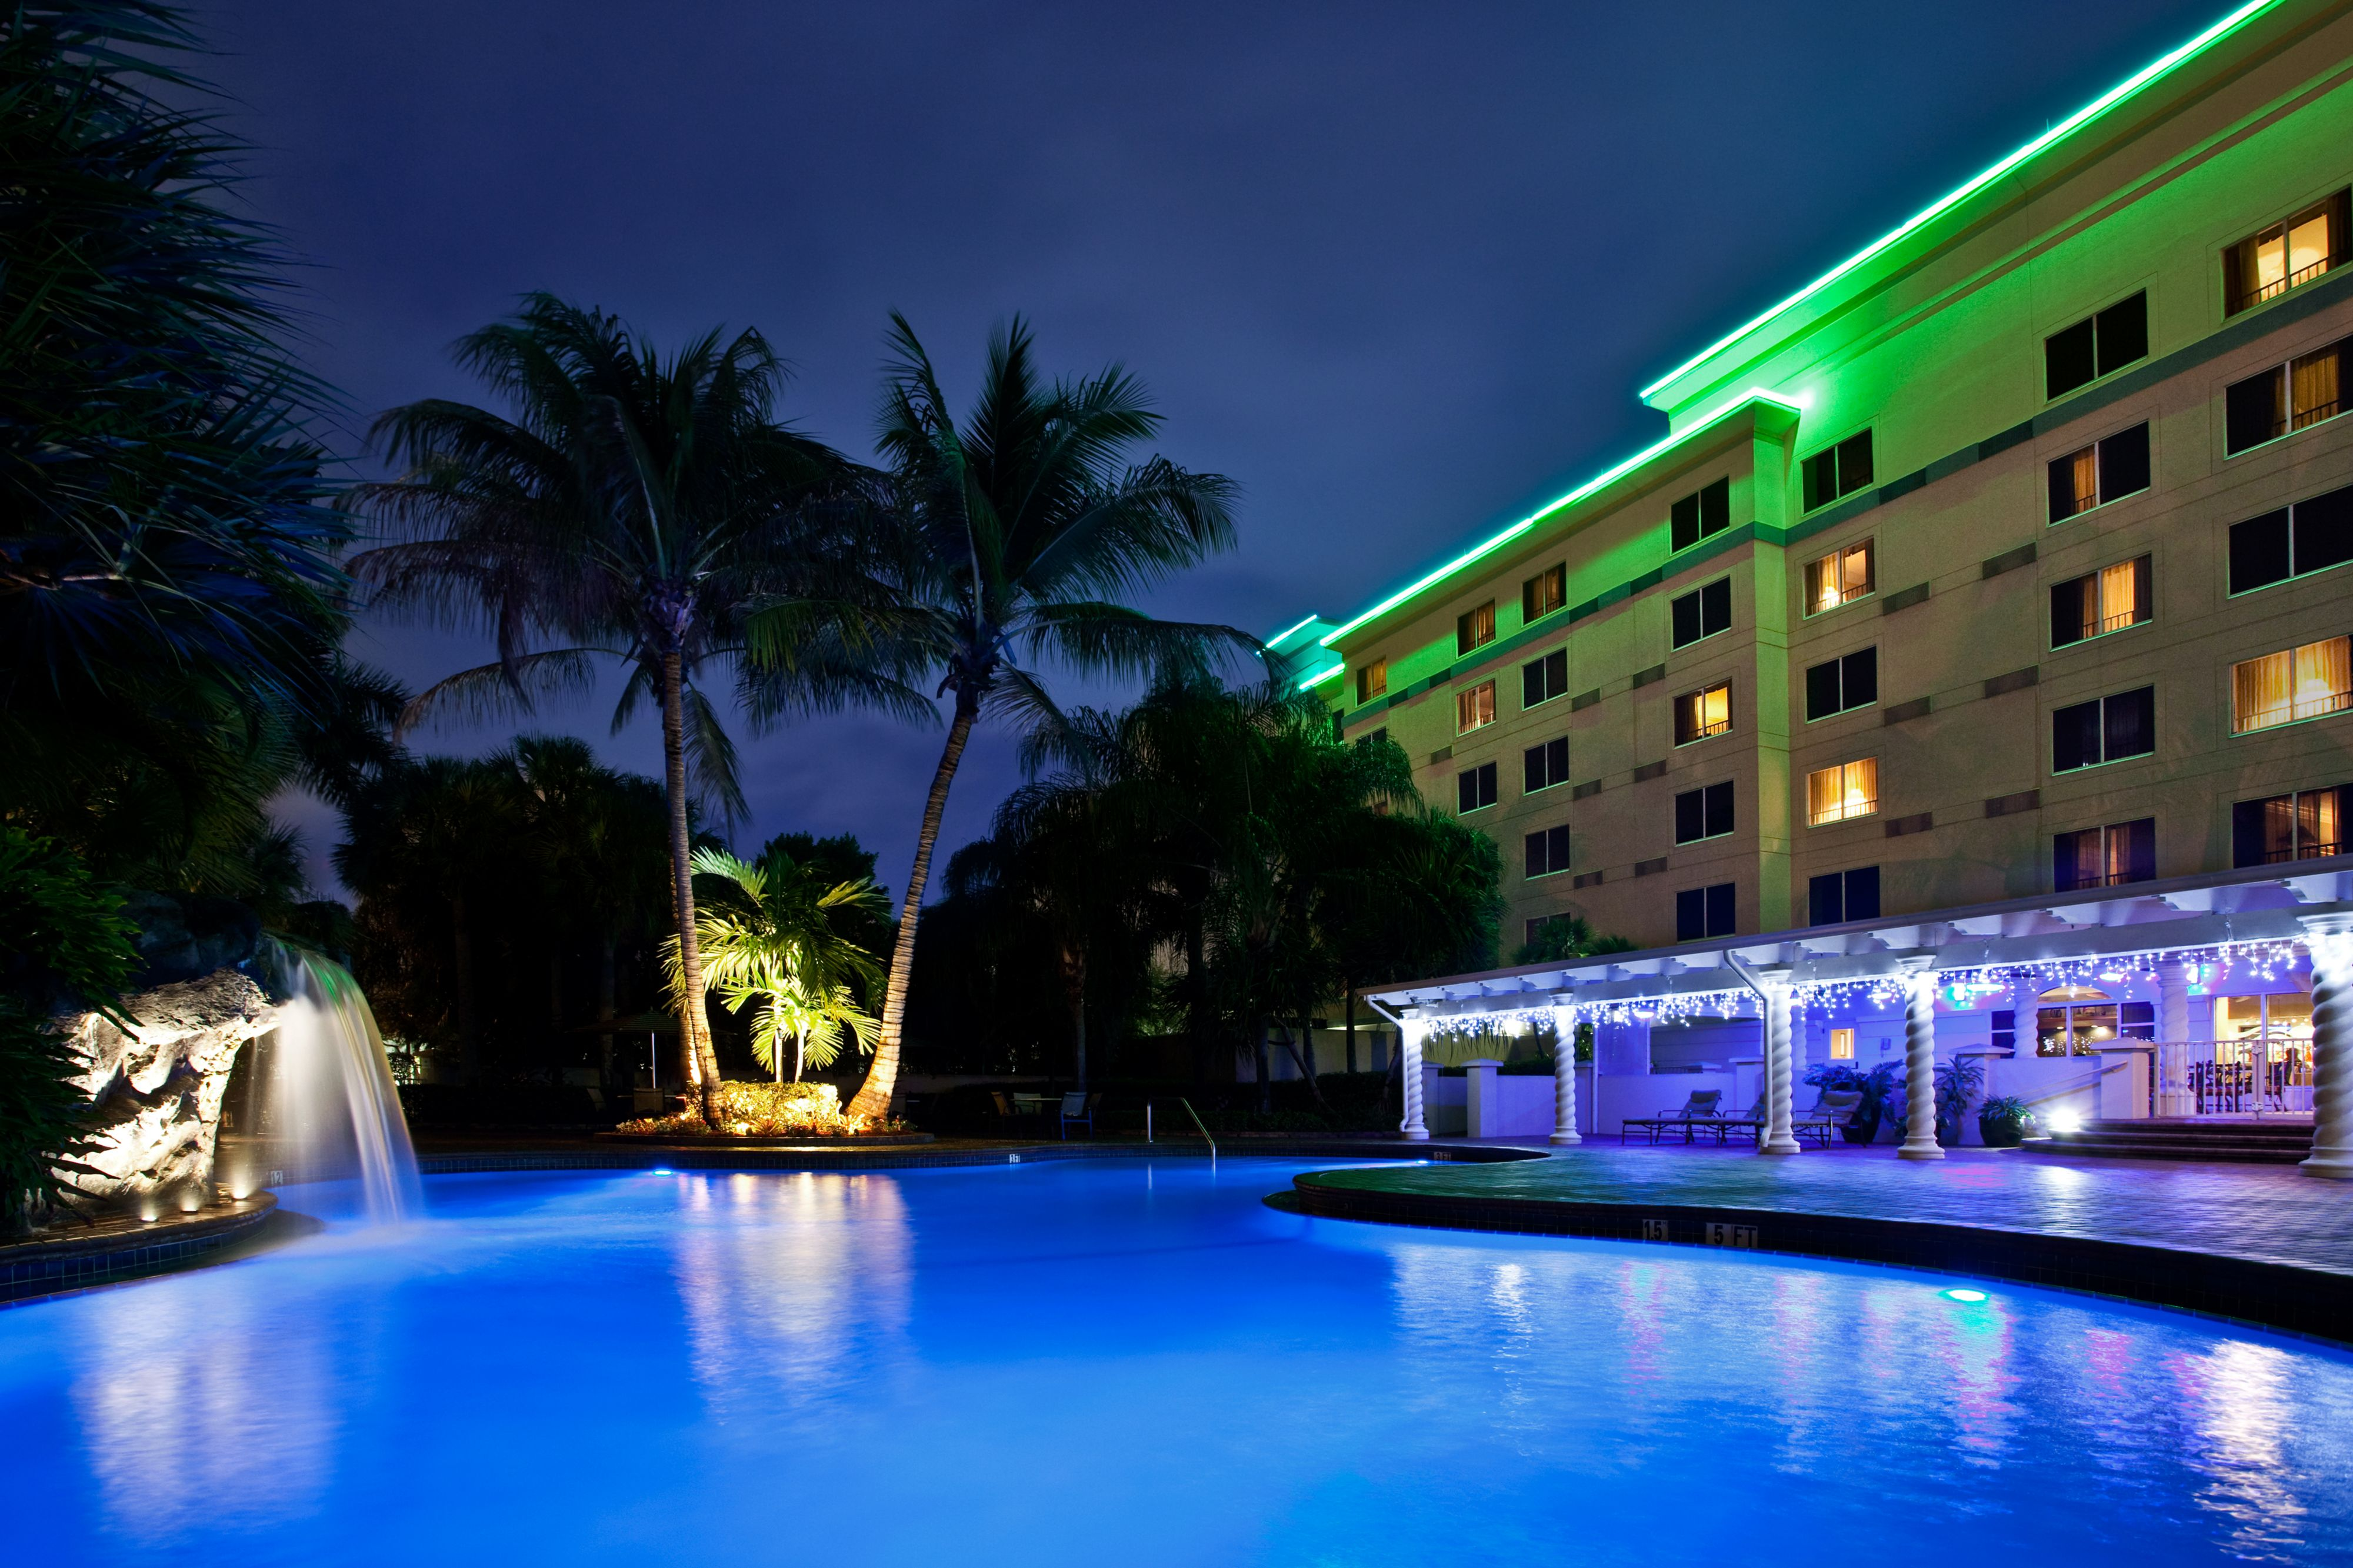 Holiday Inn Fort Lauderdale Airport Hotel